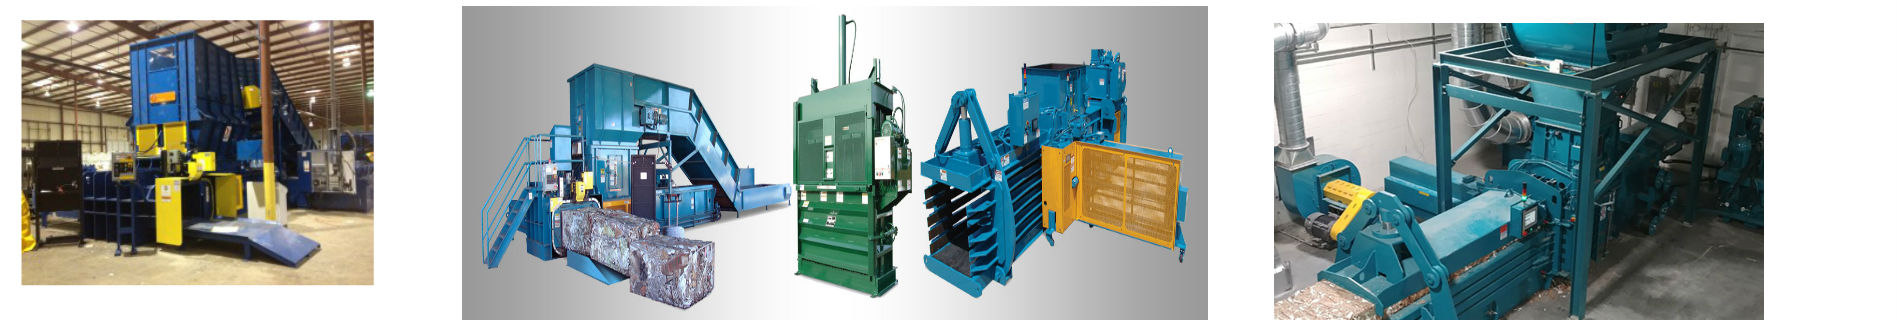 Industrial Balers banner